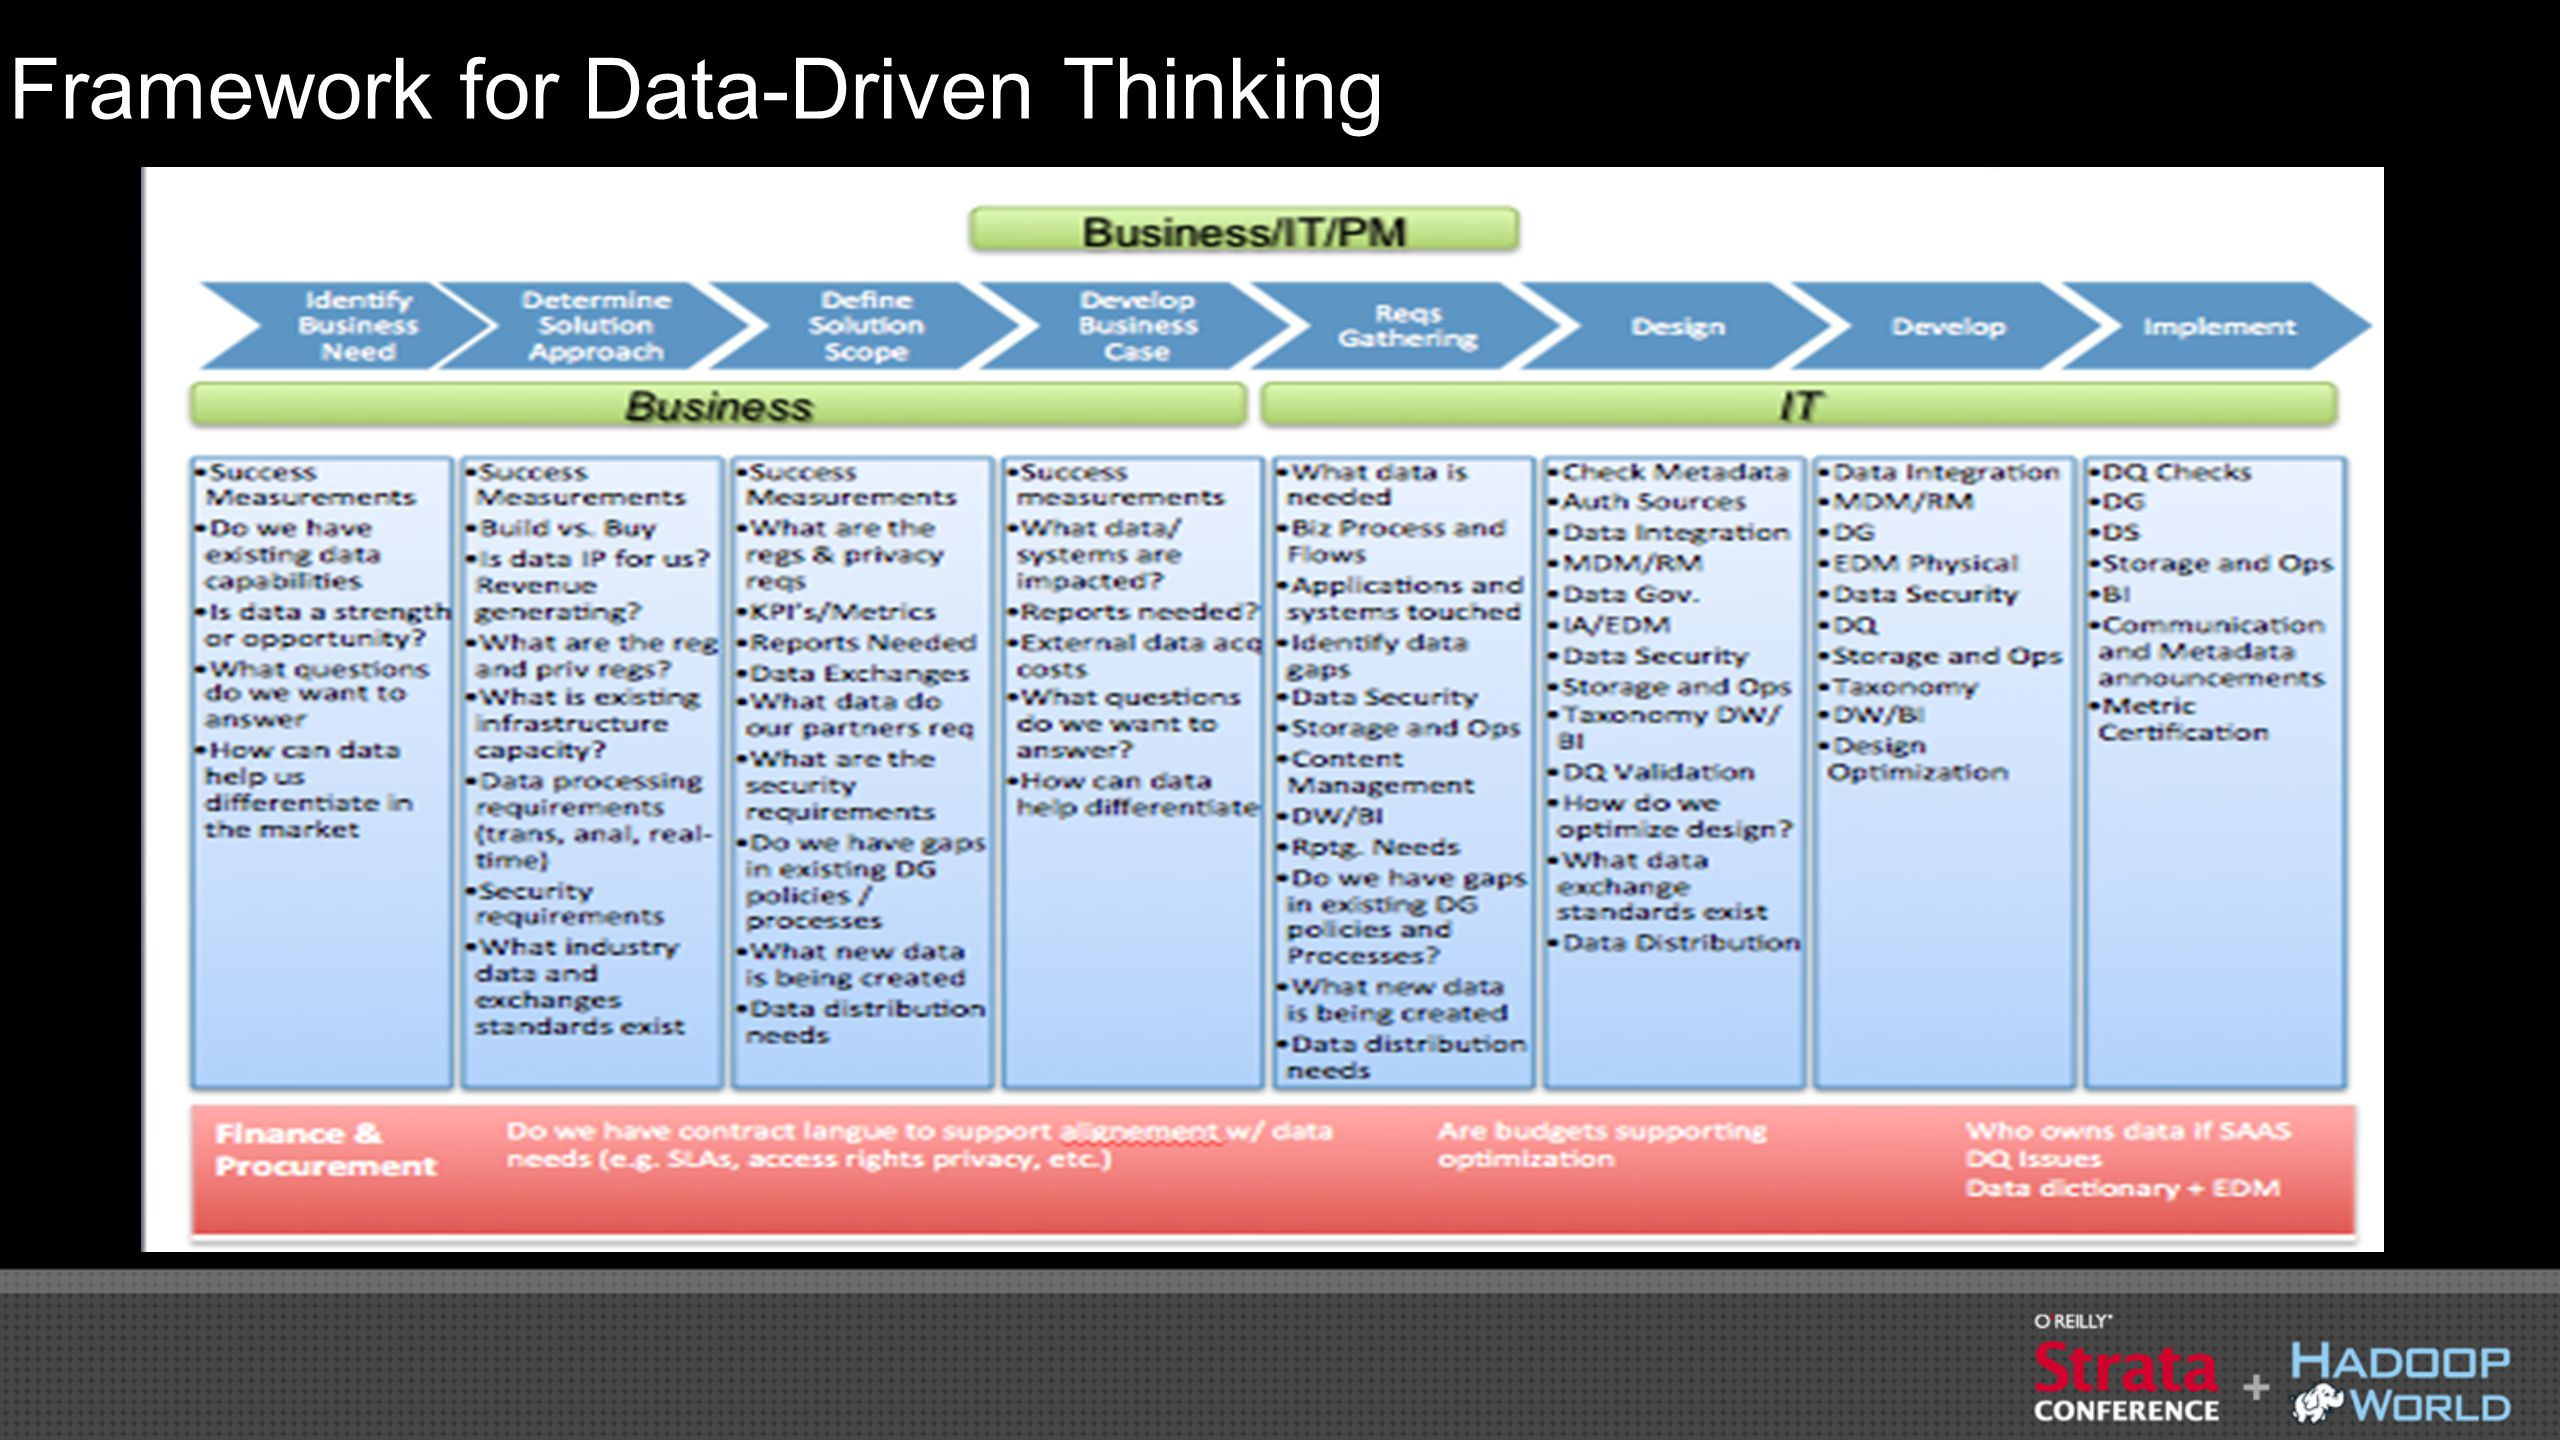 Framework for Data-Driven Thinking